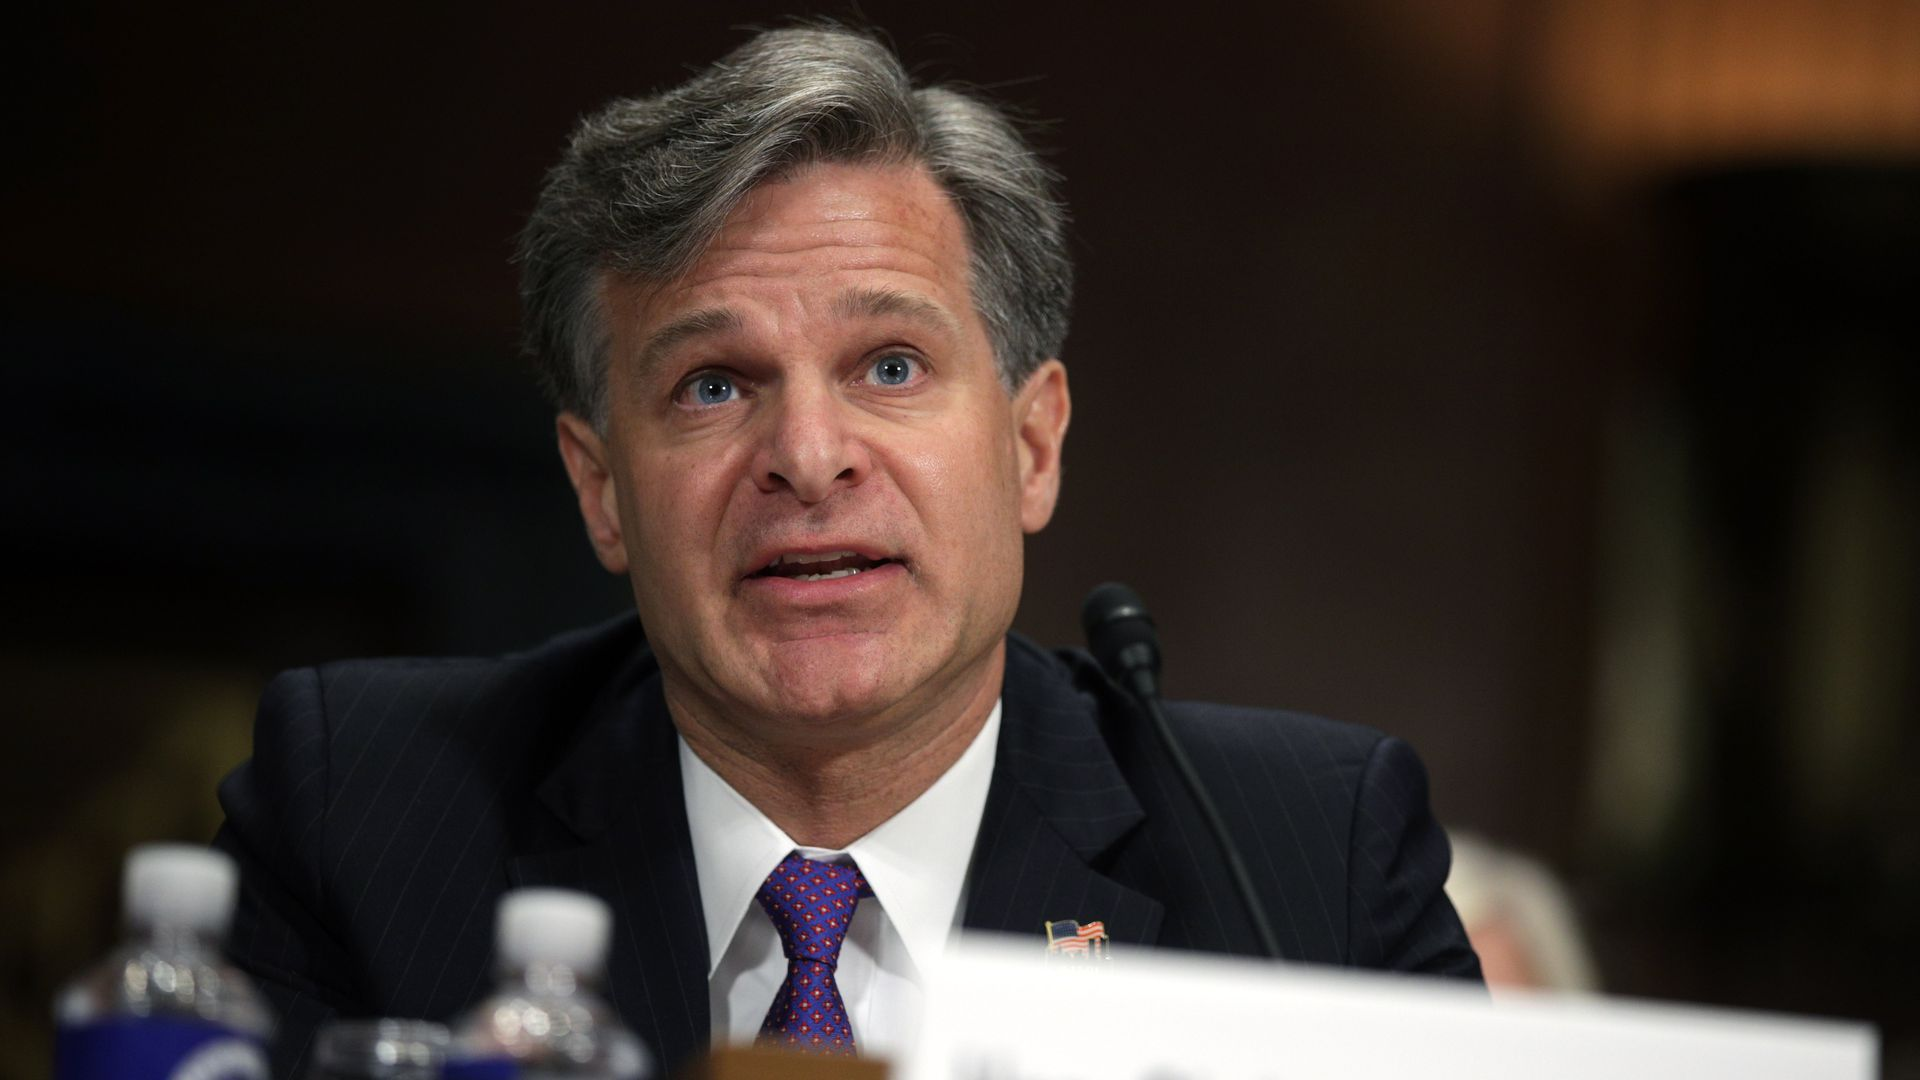 Christopher Wray testifying